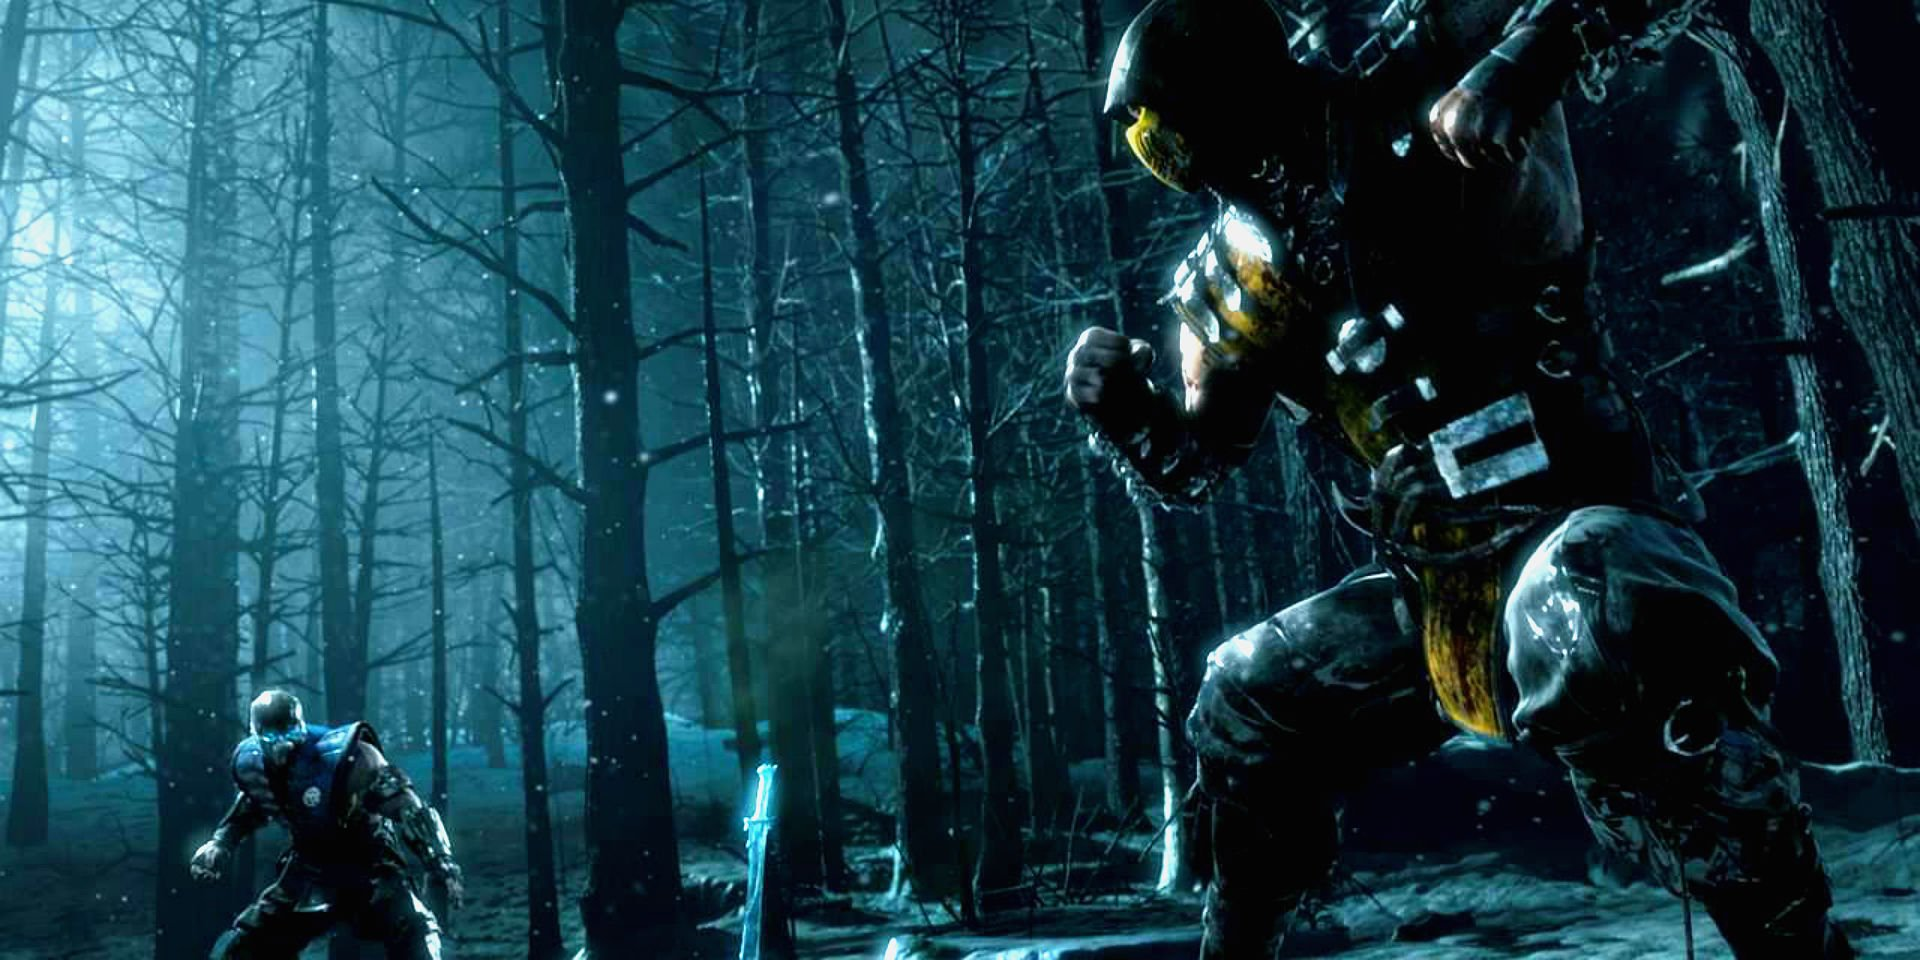 wallpaper mortal kombat x 17 description download wallpaper mortal 1920x960